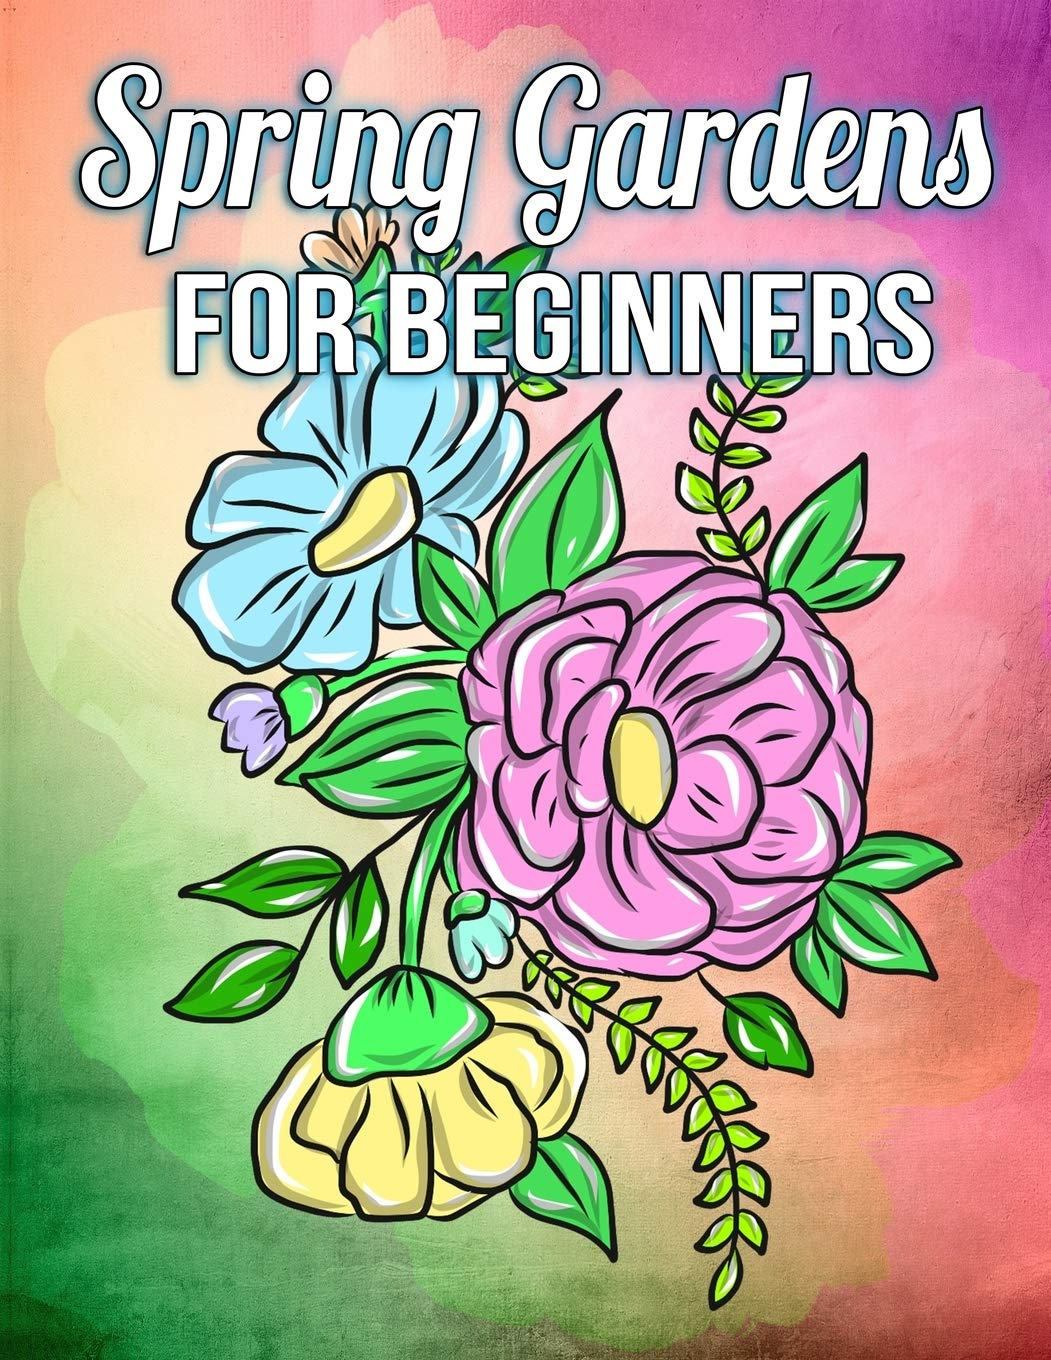 Spring Gardens for Beginners: A Simple Coloring Book for Kids and